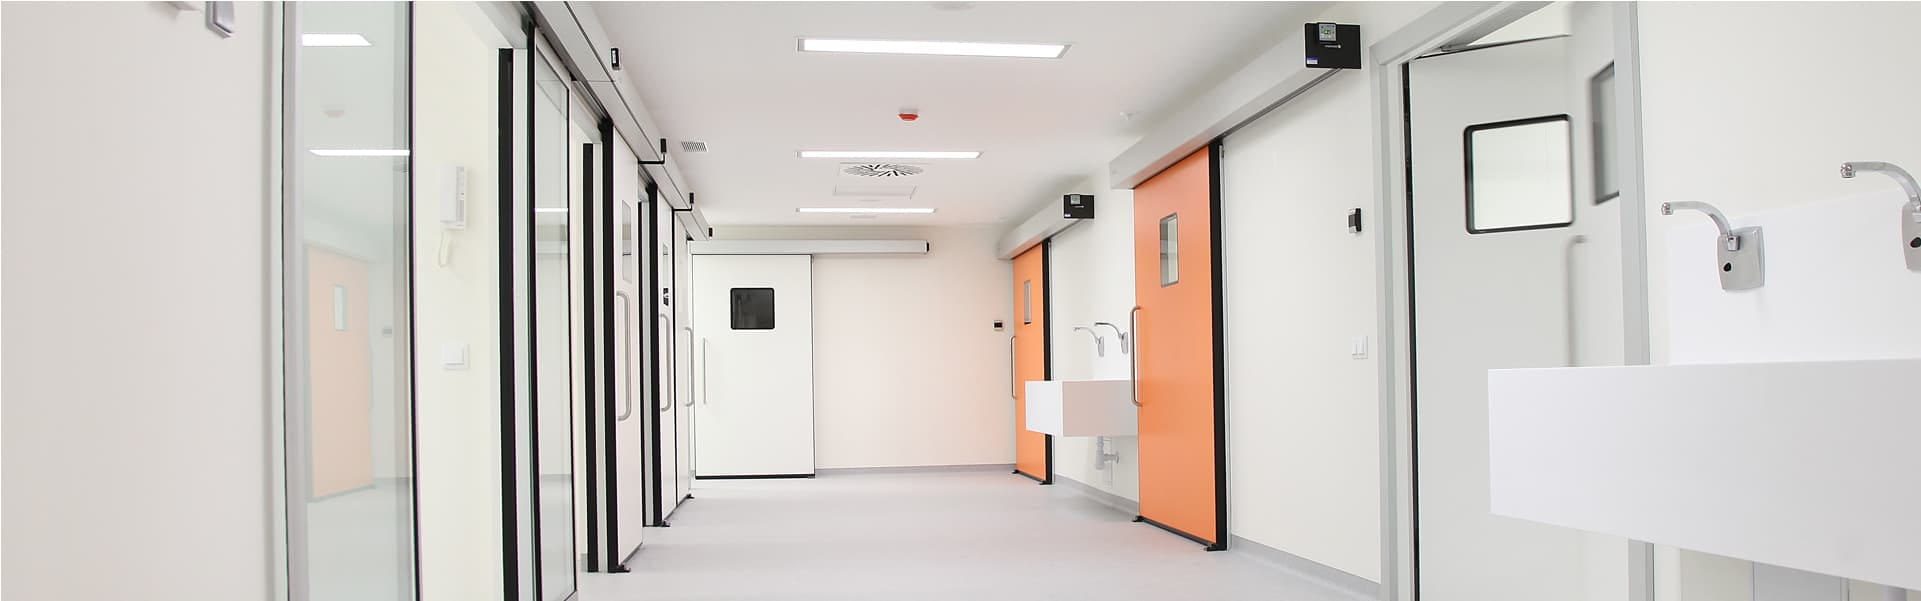 Doors for hospitals and laboratories